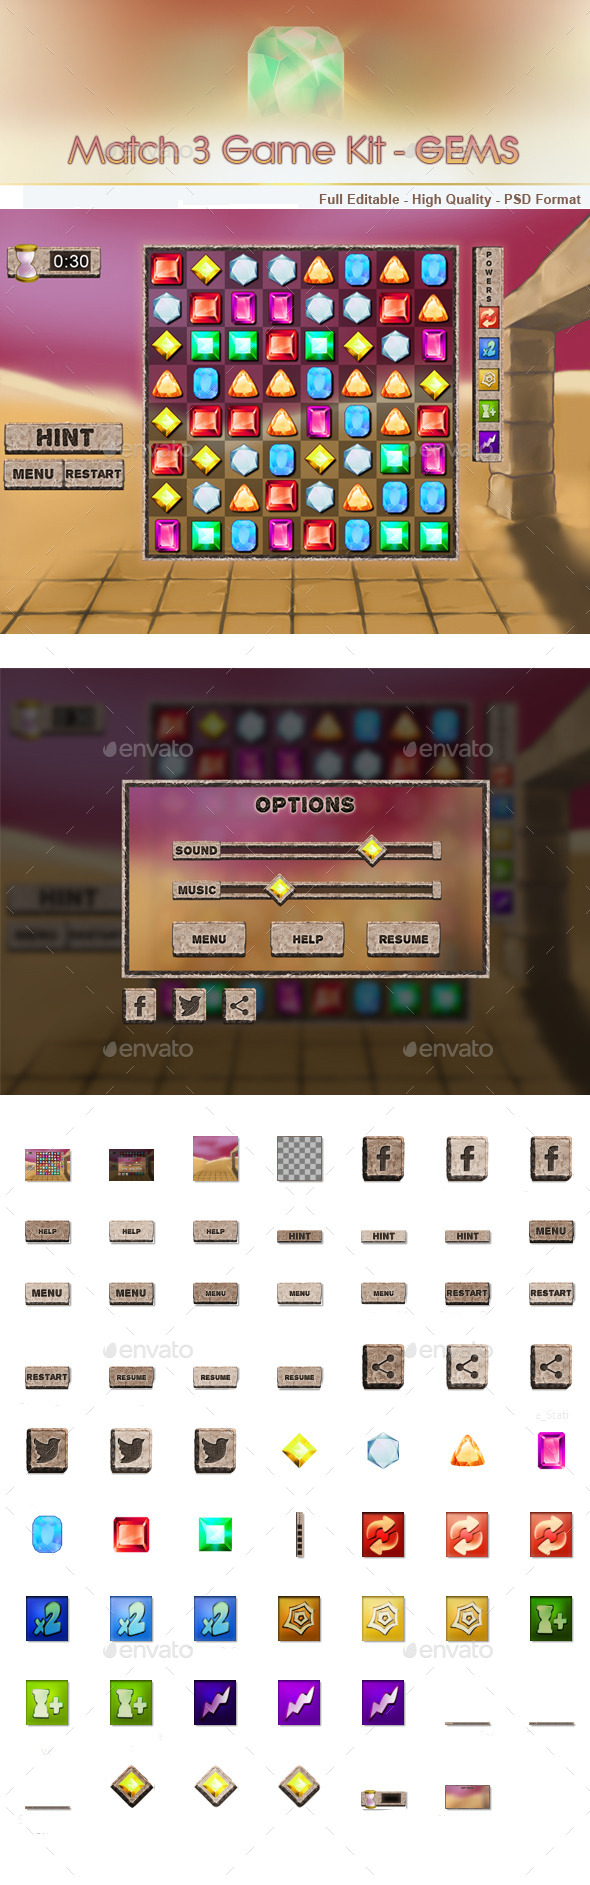 Match 3 Game Kit - Gems - User Interfaces Game Assets